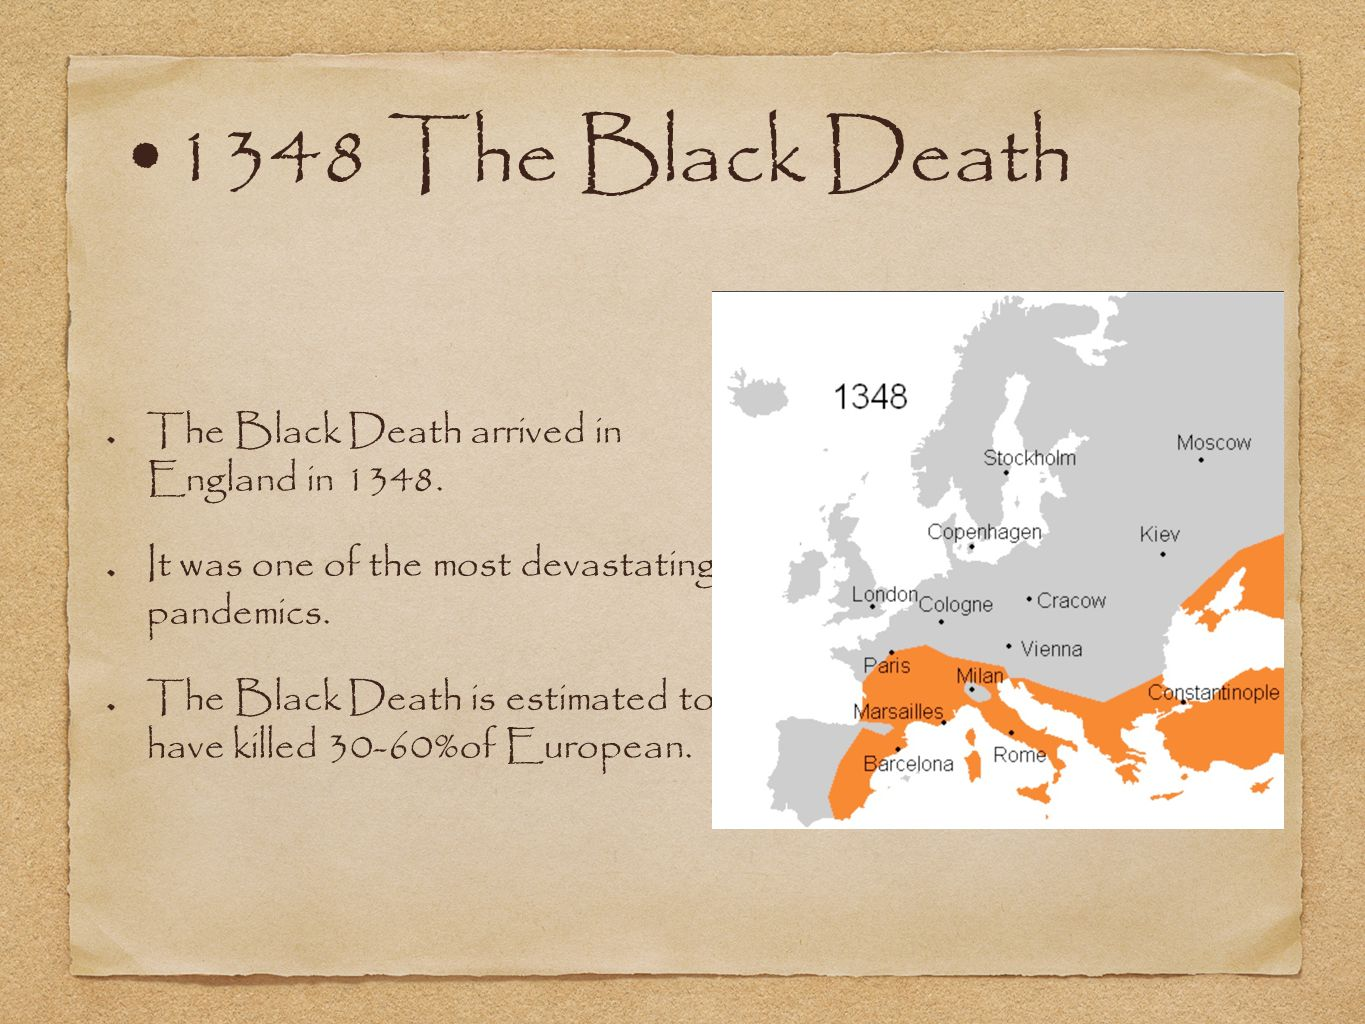 1348 The Black Death The Black Death arrived in England in 1348.